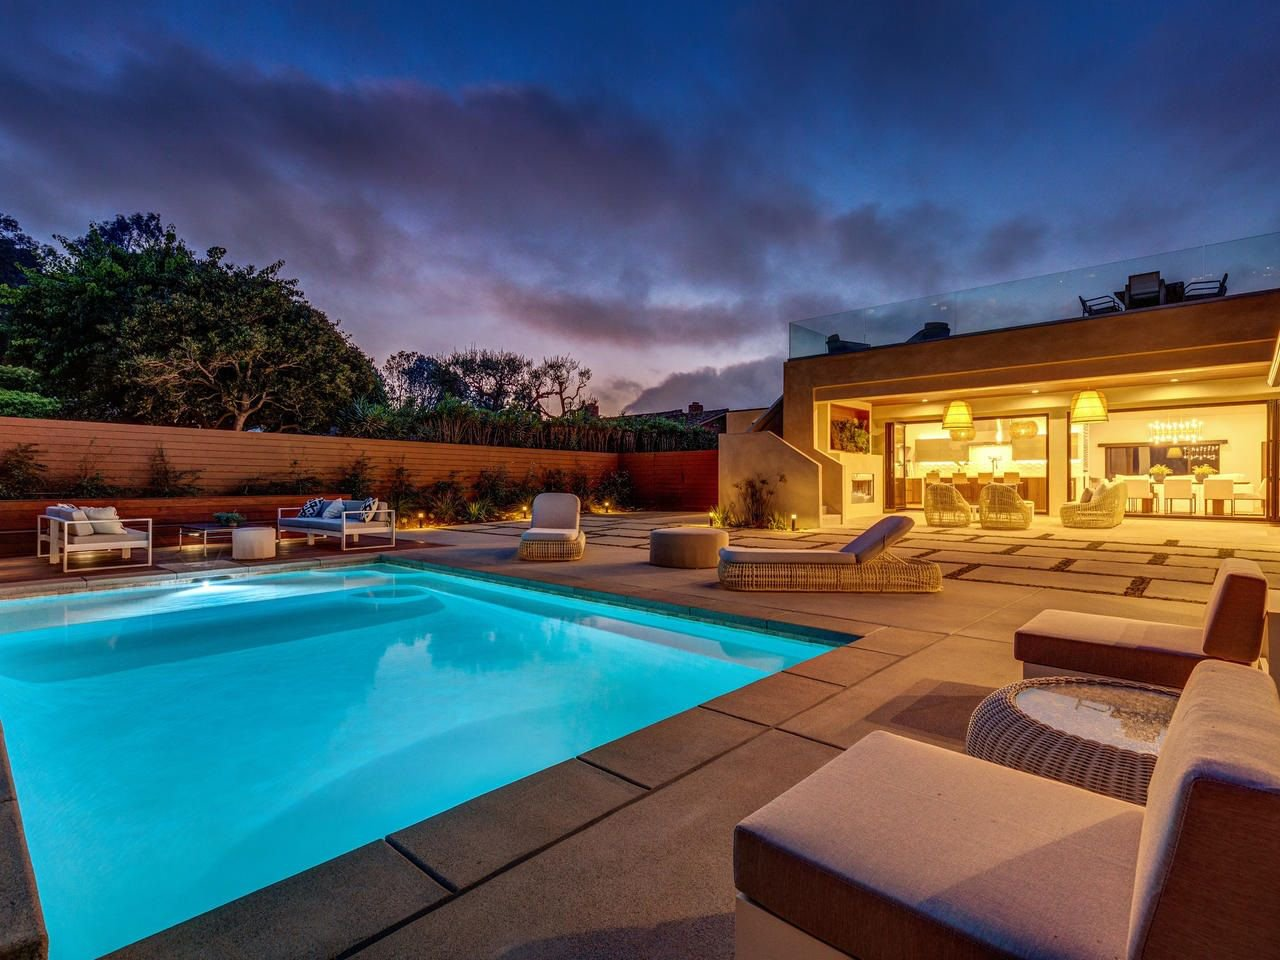 Main Photo: LA JOLLA House for sale : 4 bedrooms : 2345 Via Siena